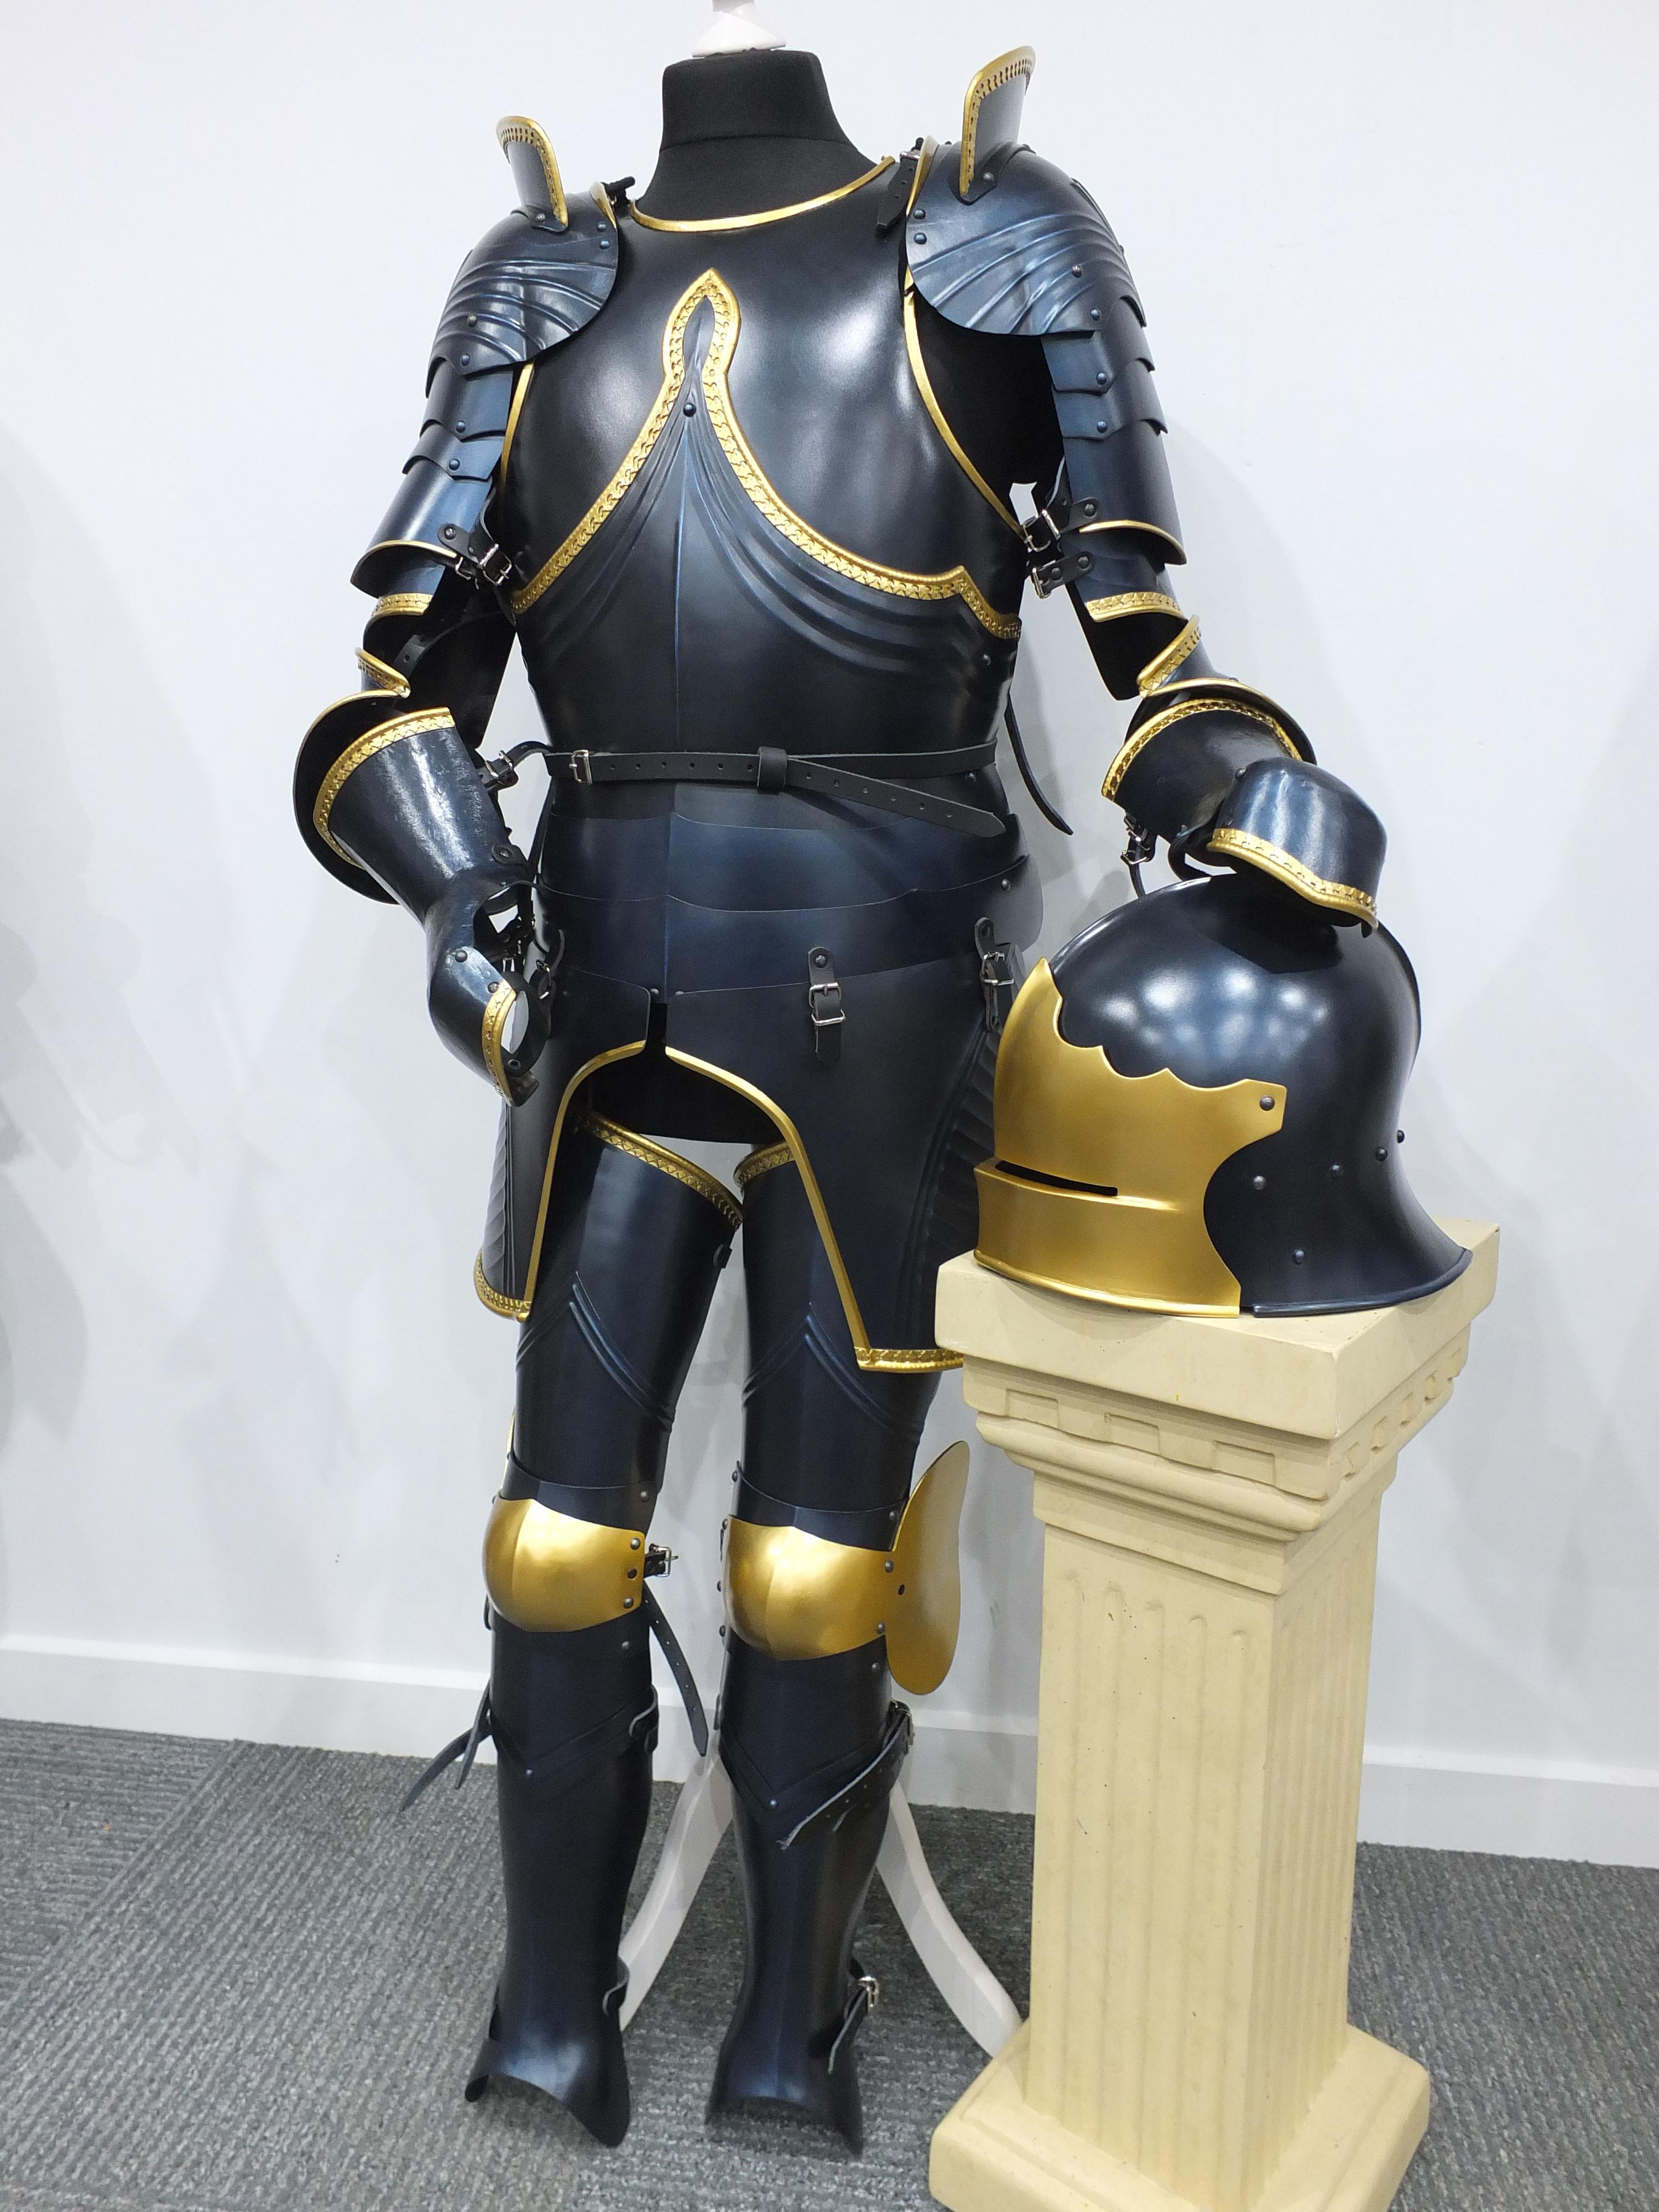 Decorative Gothic armour set in custom blued steel and gold finish